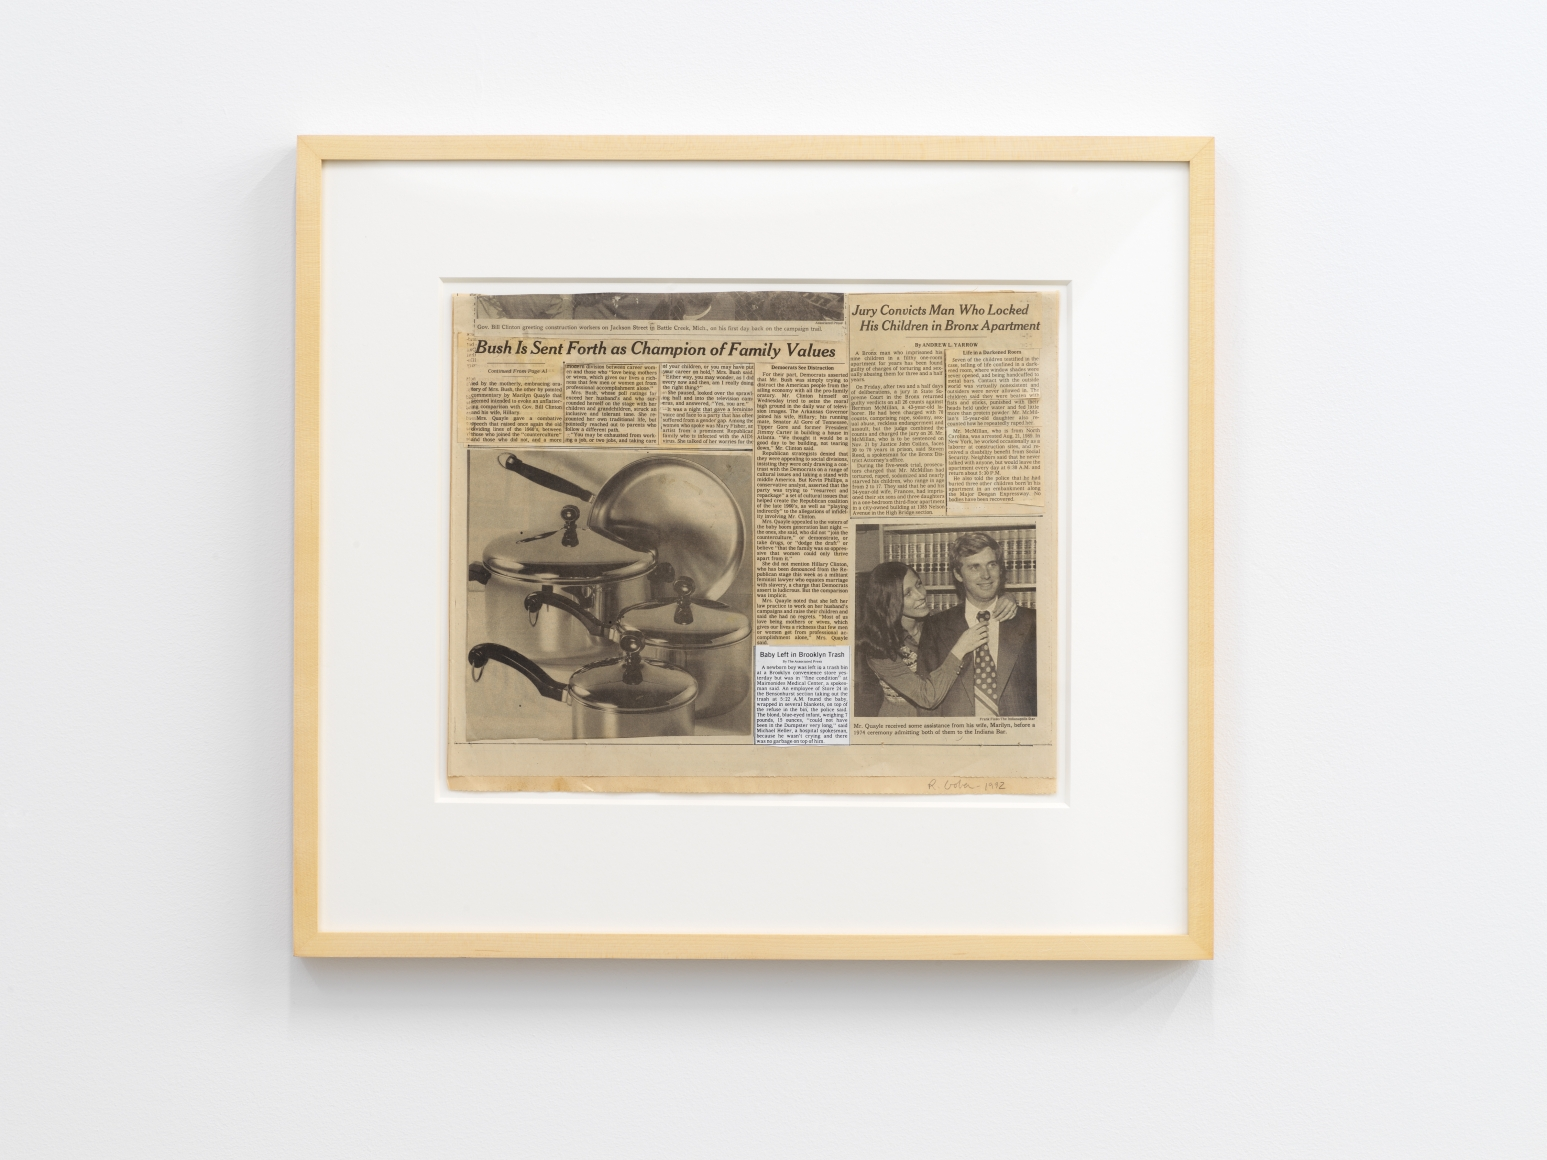 I plan to stay a believer exhibitions andrew kreps untitled 1992 collaged newspaper with photocopy paper 11 14 x 13 34 in 286 x 349 cm framed 18 34 x 21 x 1 in 476 x 533 x 25 cm jeuxipadfo Images